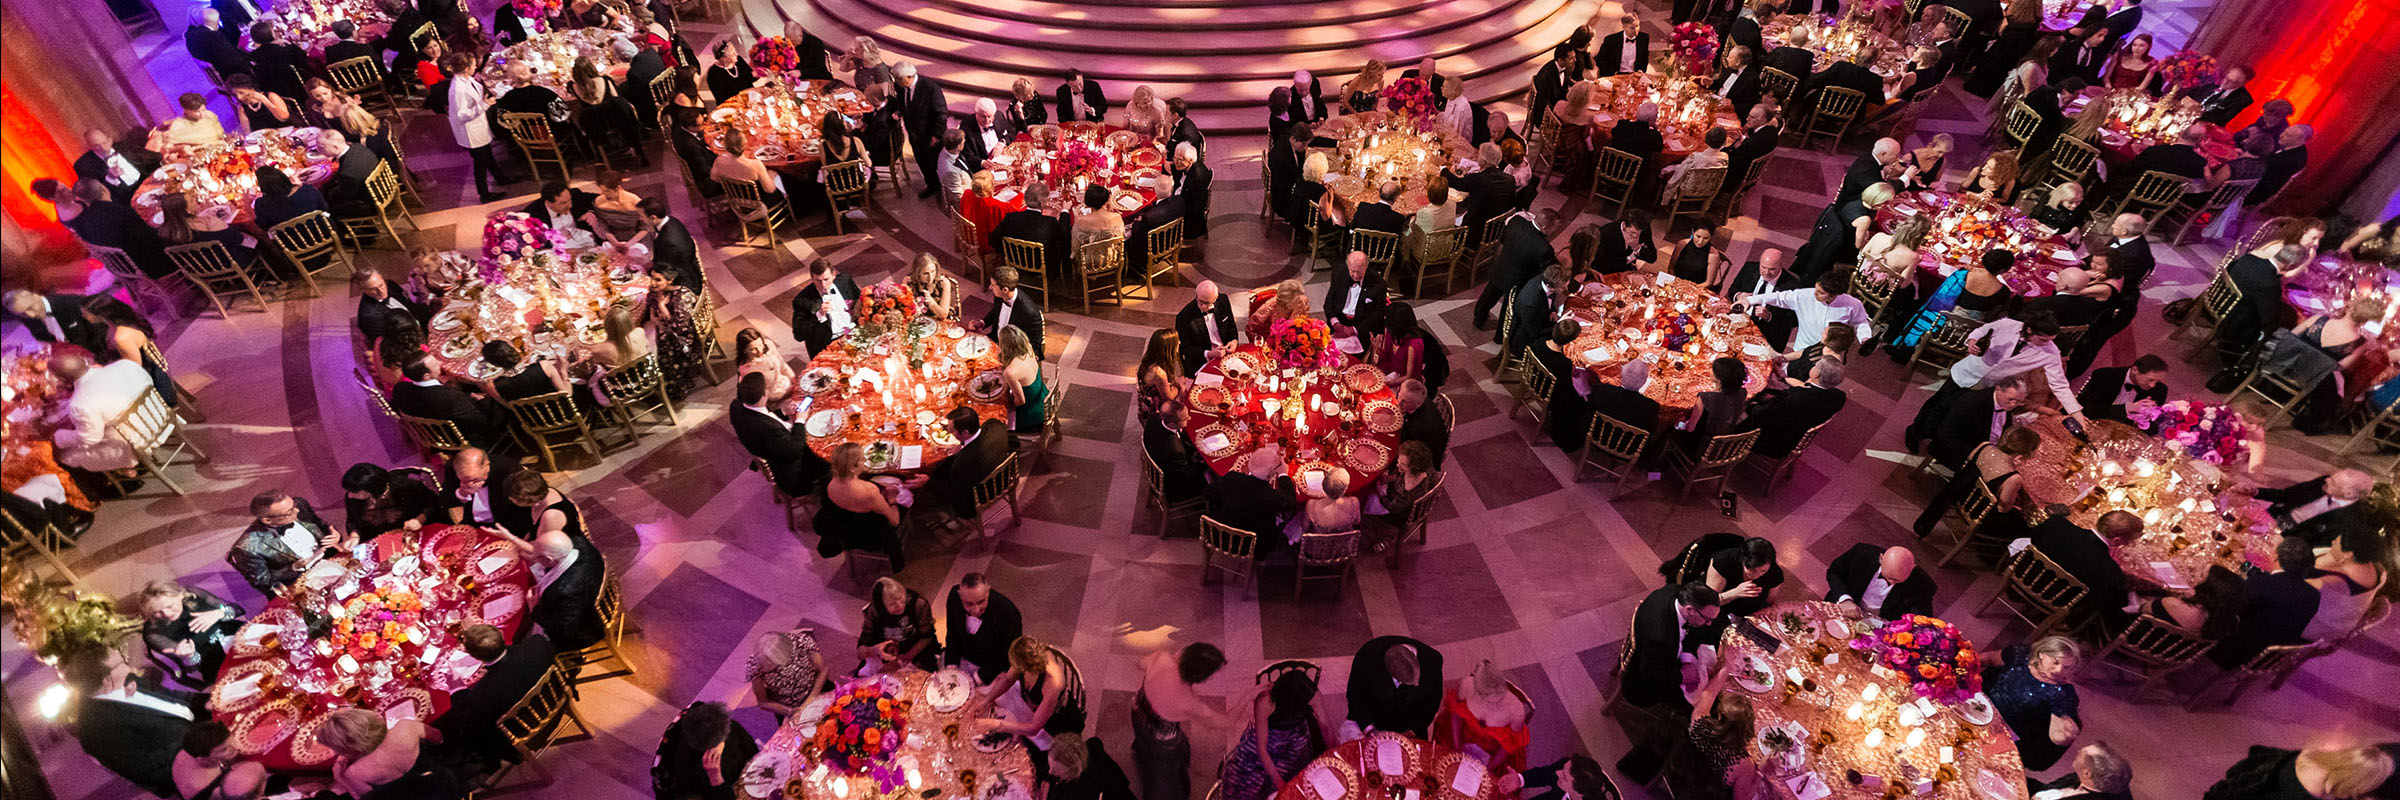 SAN FRANCISCO, CA - January 23 - Atmosphere at SF Ballet Gala 2019 on January 23rd 2019 at City Hall/ War Memorial in San Francisco, CA (Photo - Andrew Caulfield for Drew Altizer Photography)